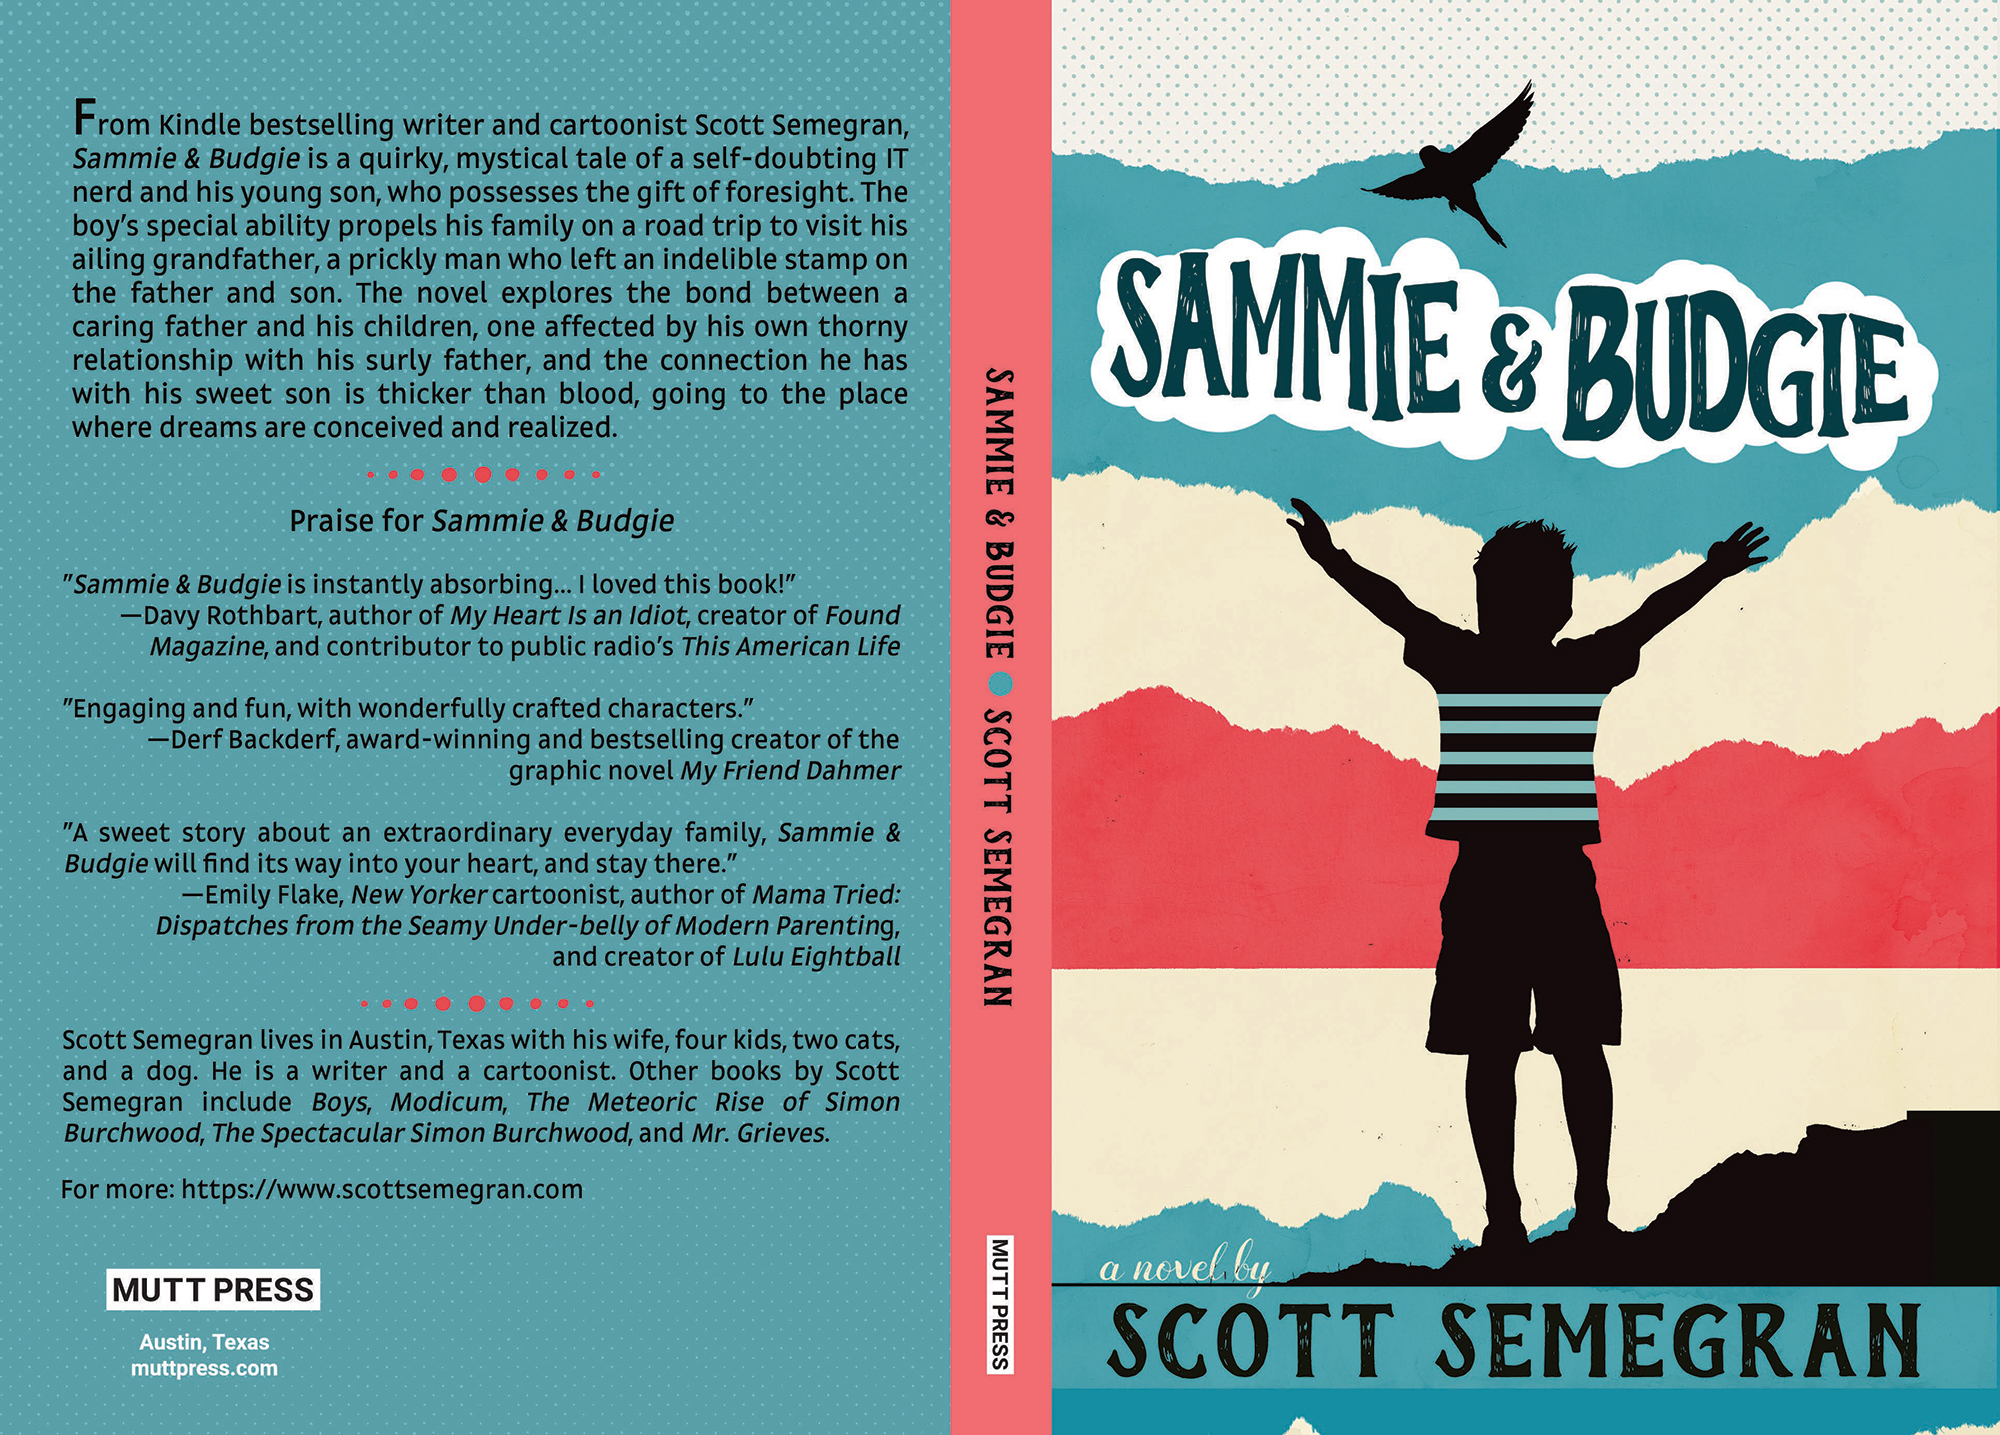 Book Cover Images Isbn : Sammie budgie texas authors book cover awards winner